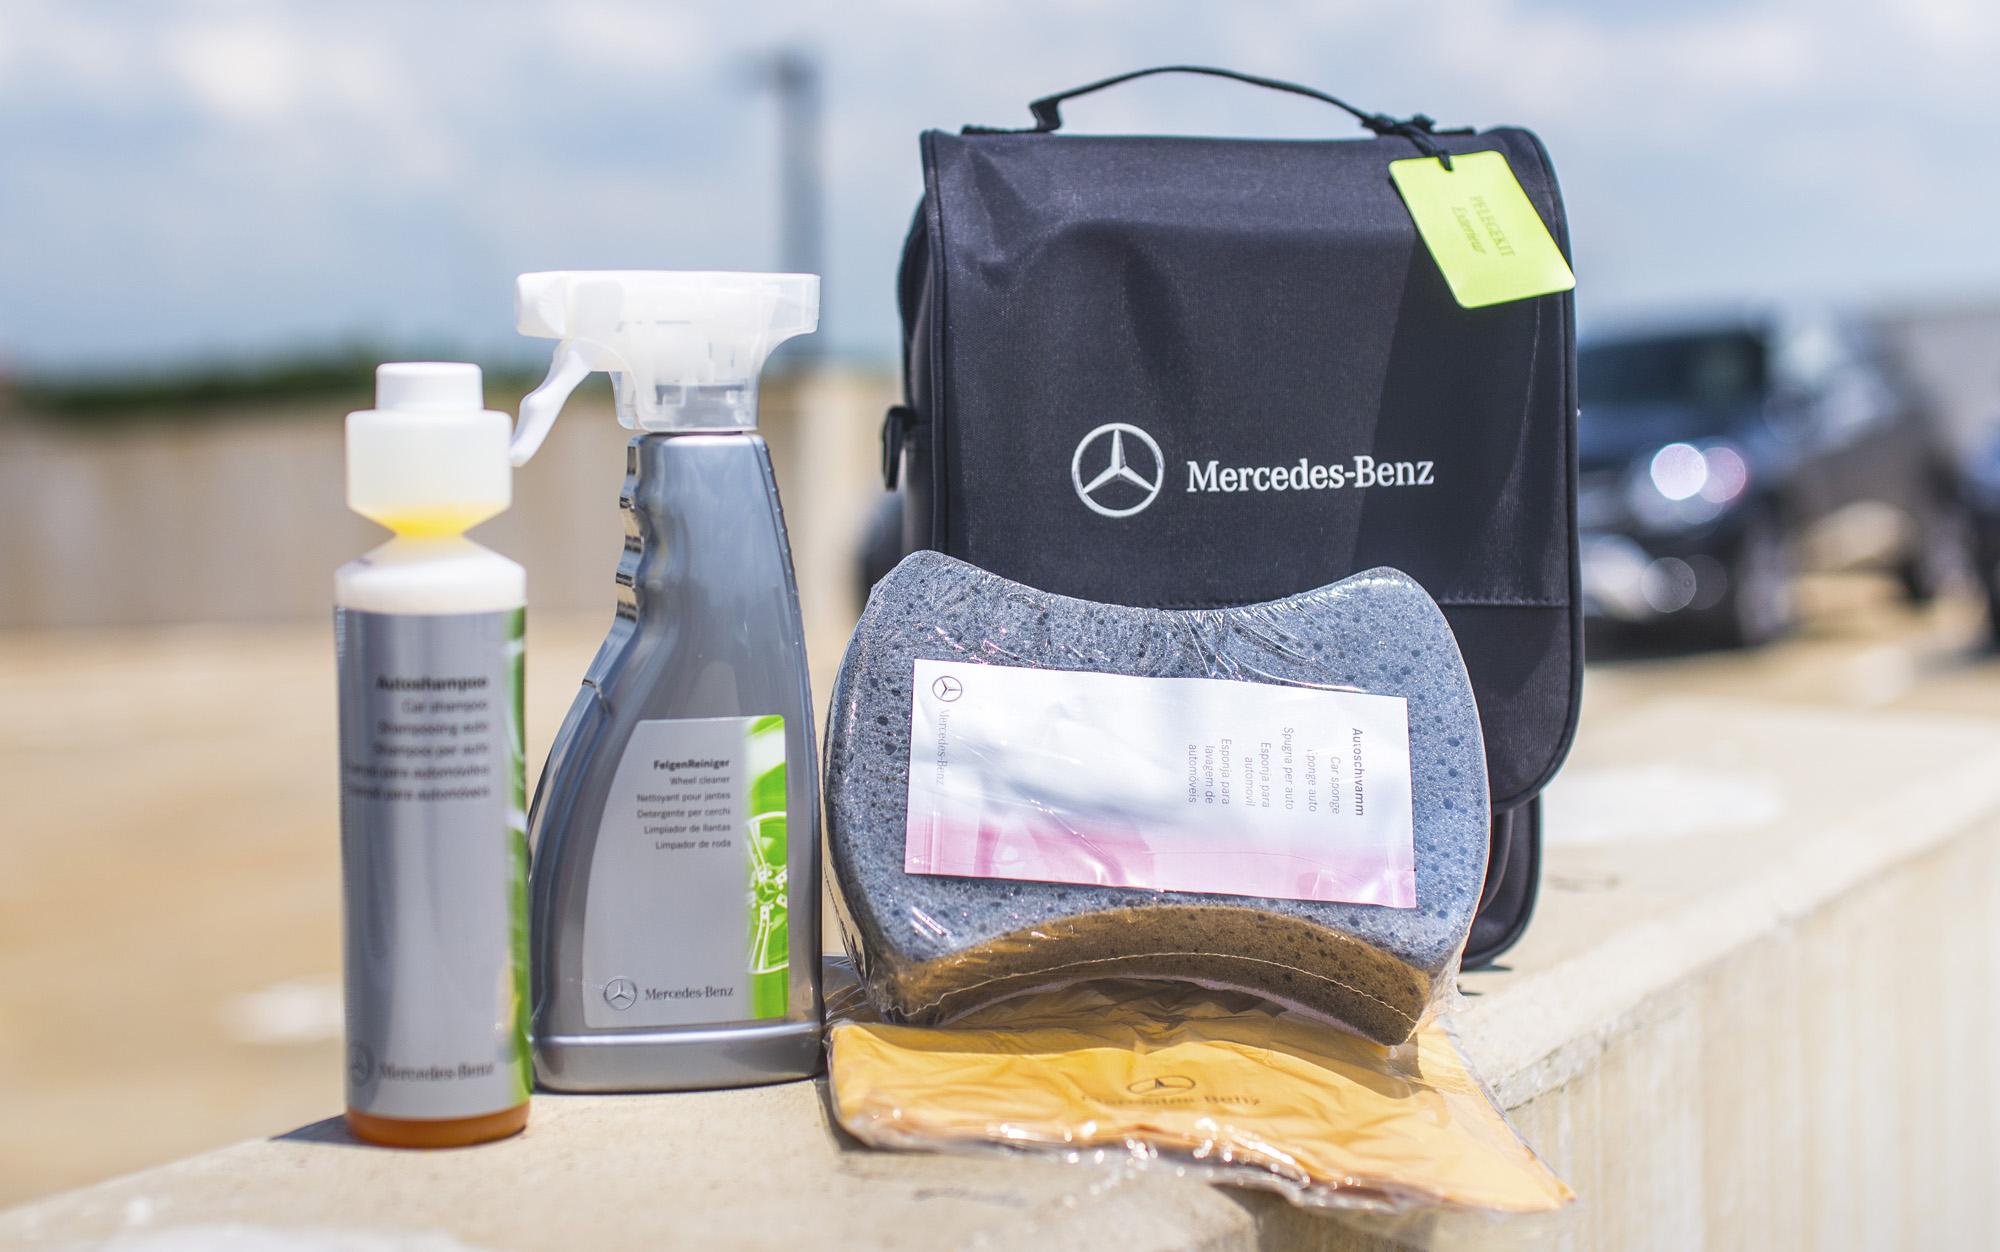 Make It Shine With Superior Car Care Mercedes Benz Of Sugar Land Paint Keep Your Vehicle Looking Like New Specially Formulated Shampoo Cleaner Polish And Other Products From The Product